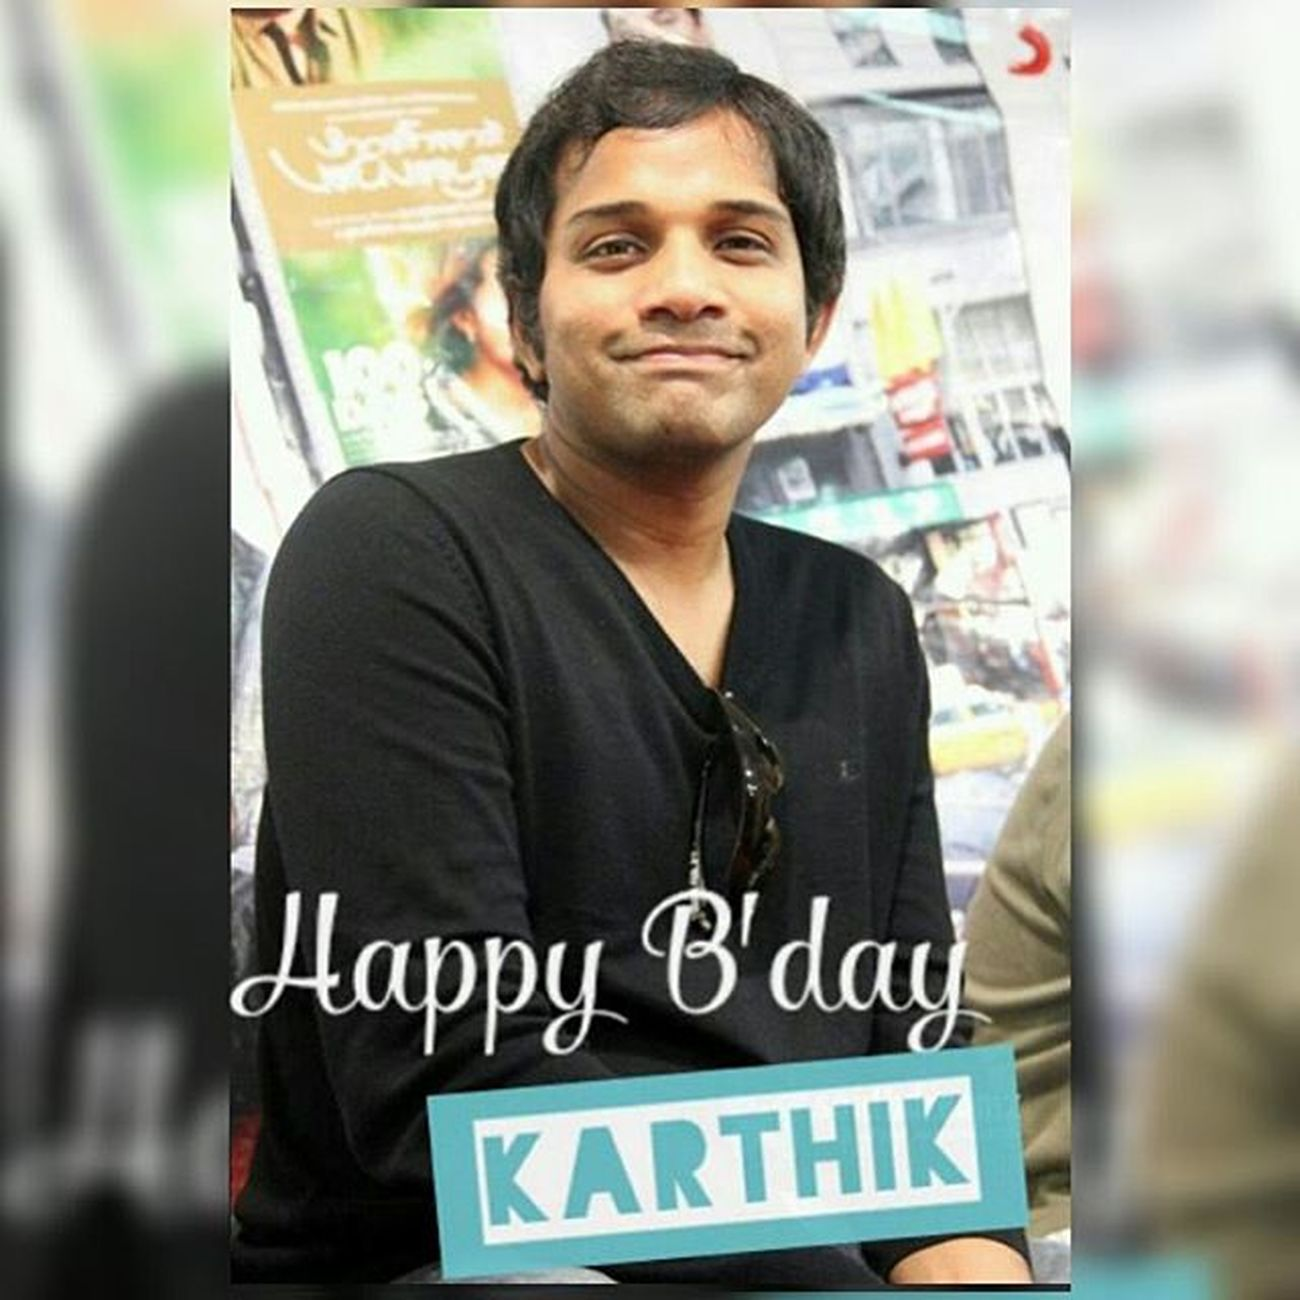 Happppyyy Biirrrddaayyy to the most important person in ma lyf...!! Karthik Anna... Yu r d bst.. Yu may not be physically present wid me.. But ua always by my side wid ua Awsum Songz... Yu make me laugh, smile, cry, dance, sing... Yu make me feel evrythng... Yu r d only person whom i believe would b till d end of ma lyf... Thnx a lotta fo ua Songs... Yu make me go crazy fo dem... Njoy d day... Lysm...!!! Aahatein Rekkalochina Prema Devatha Kaatril Eeram Neelathaamare Yeduta Nilichindi Oh my friend Nijanga Nenena Yemantaave Ye Theega Puvvuno Badhulu Thochani Arere Arere I Am in Love Aankein Behene De Chaitrama Puttadibomma Chandamamala Andagadini ñee Varasa Neede